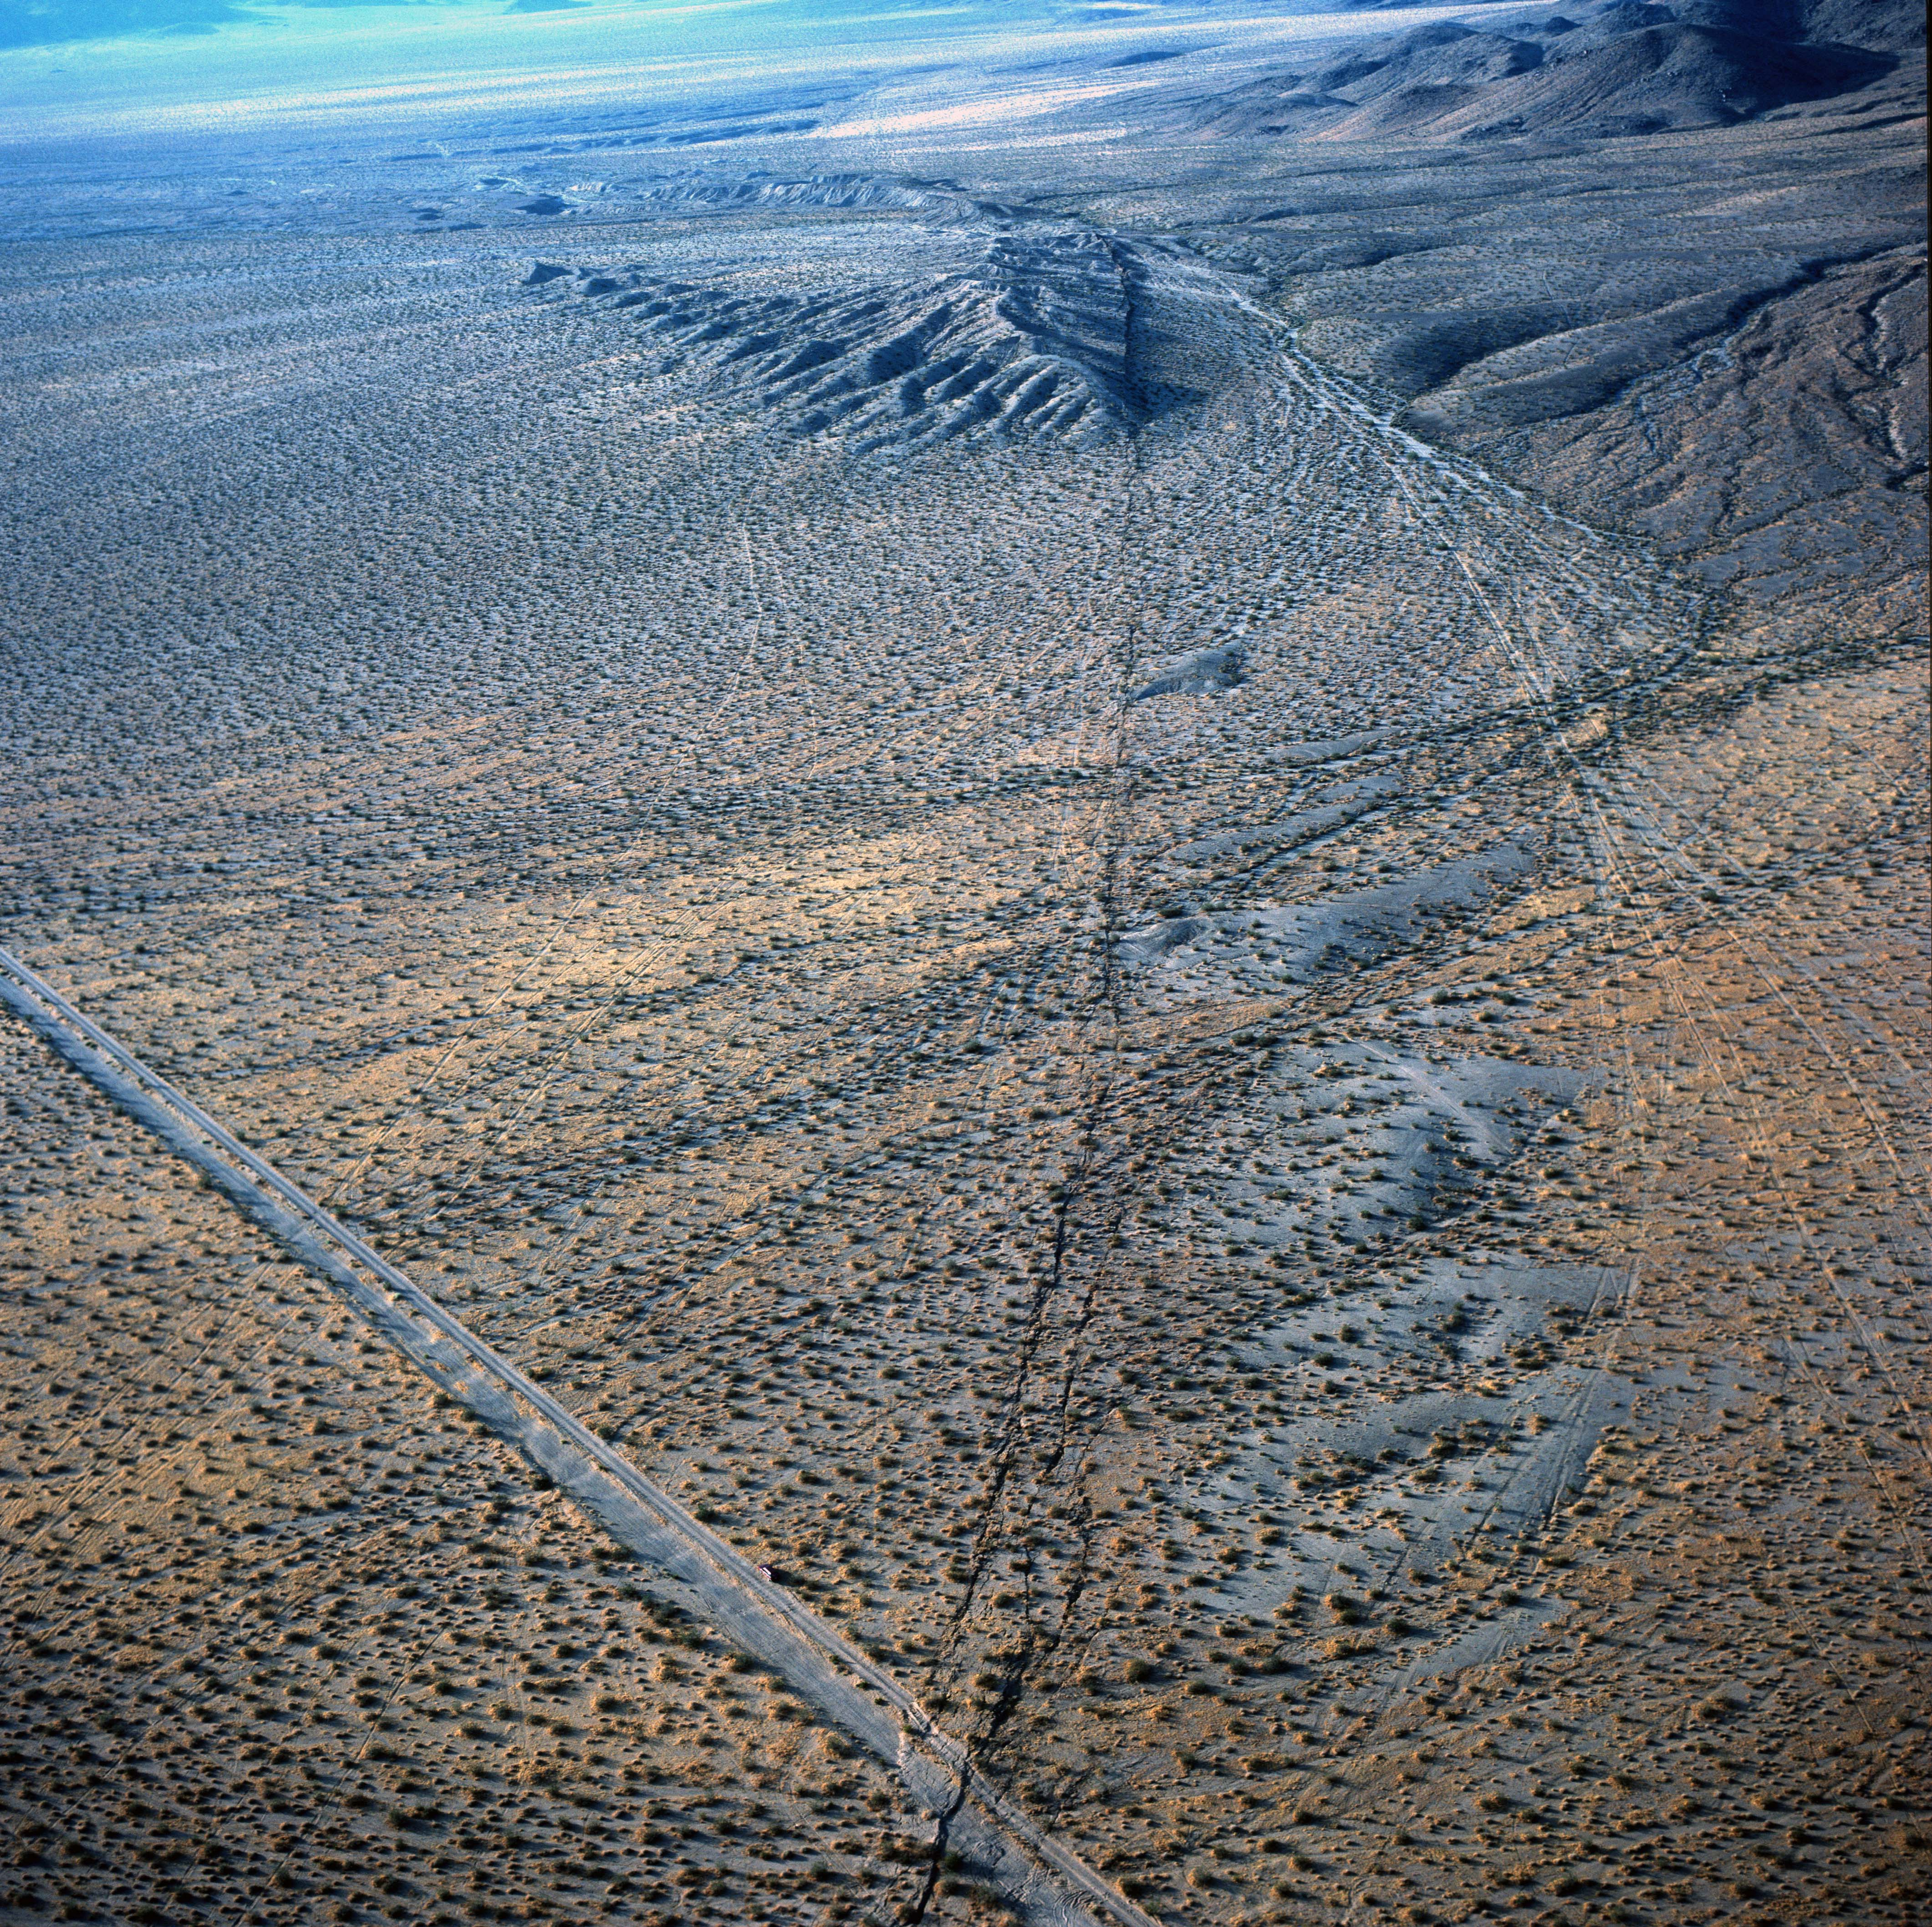 Surface Ground Rupture - Landers Earthquake